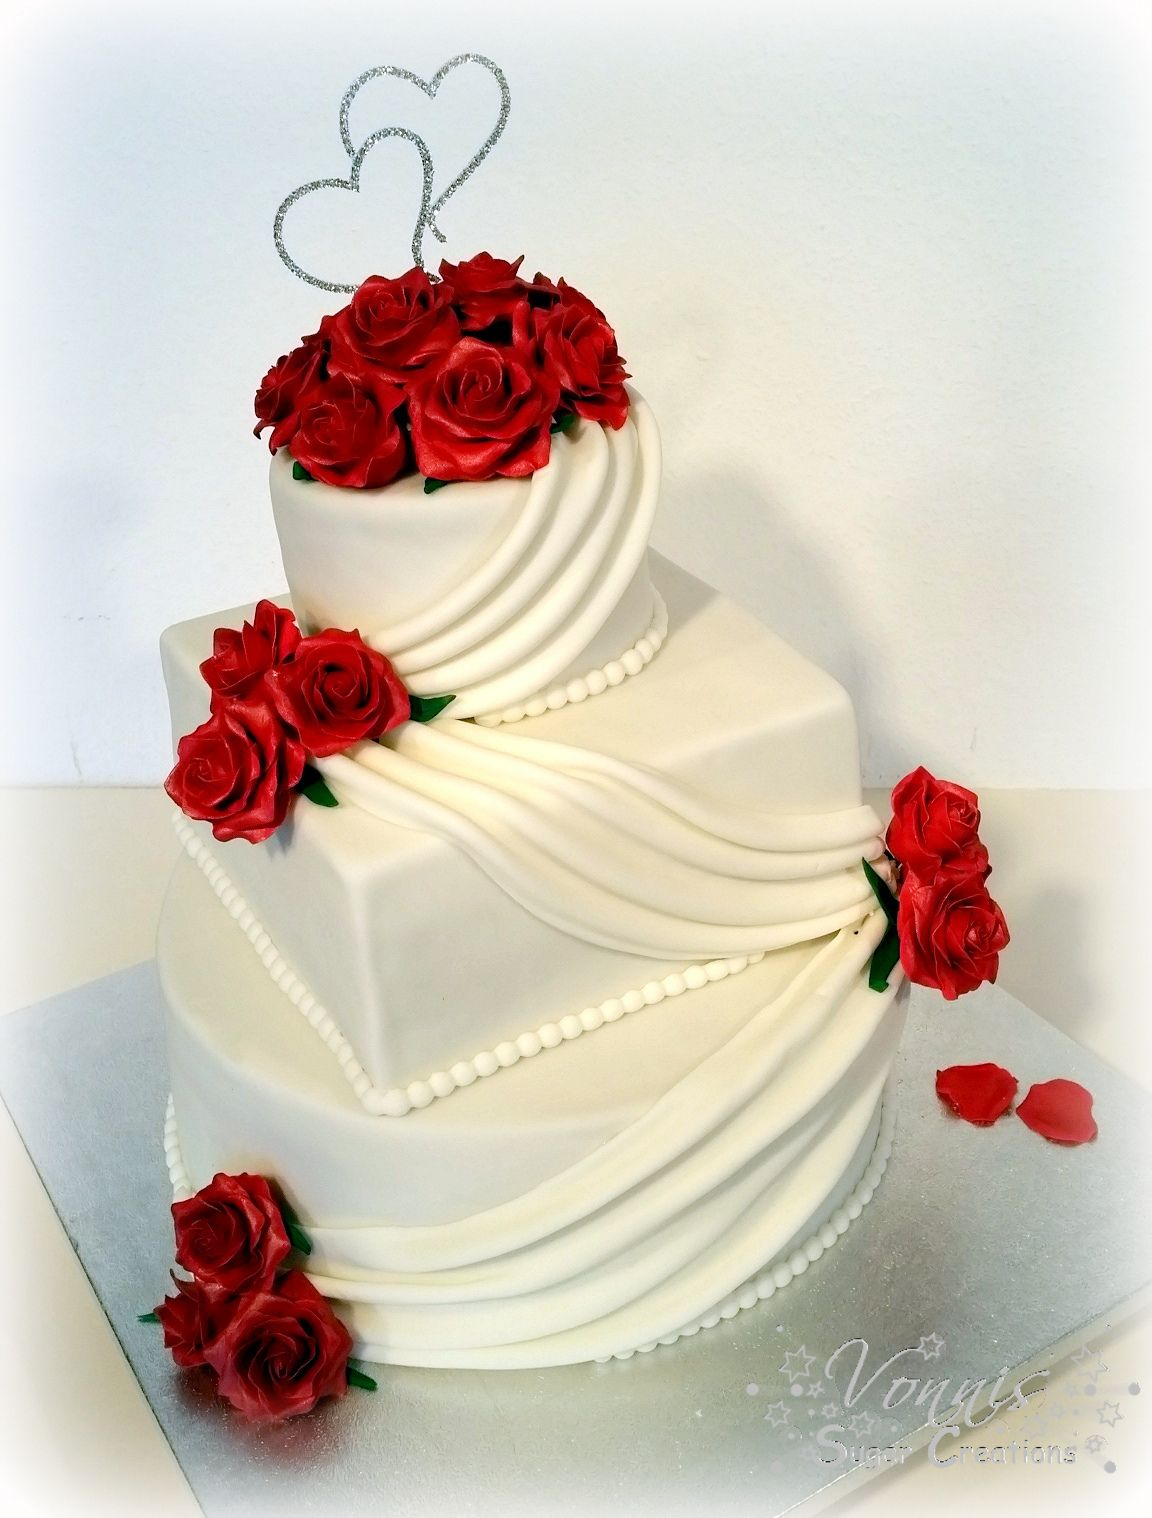 Wedding Cake White Red Roses 3 Tier Layer Classic Fondant Flower